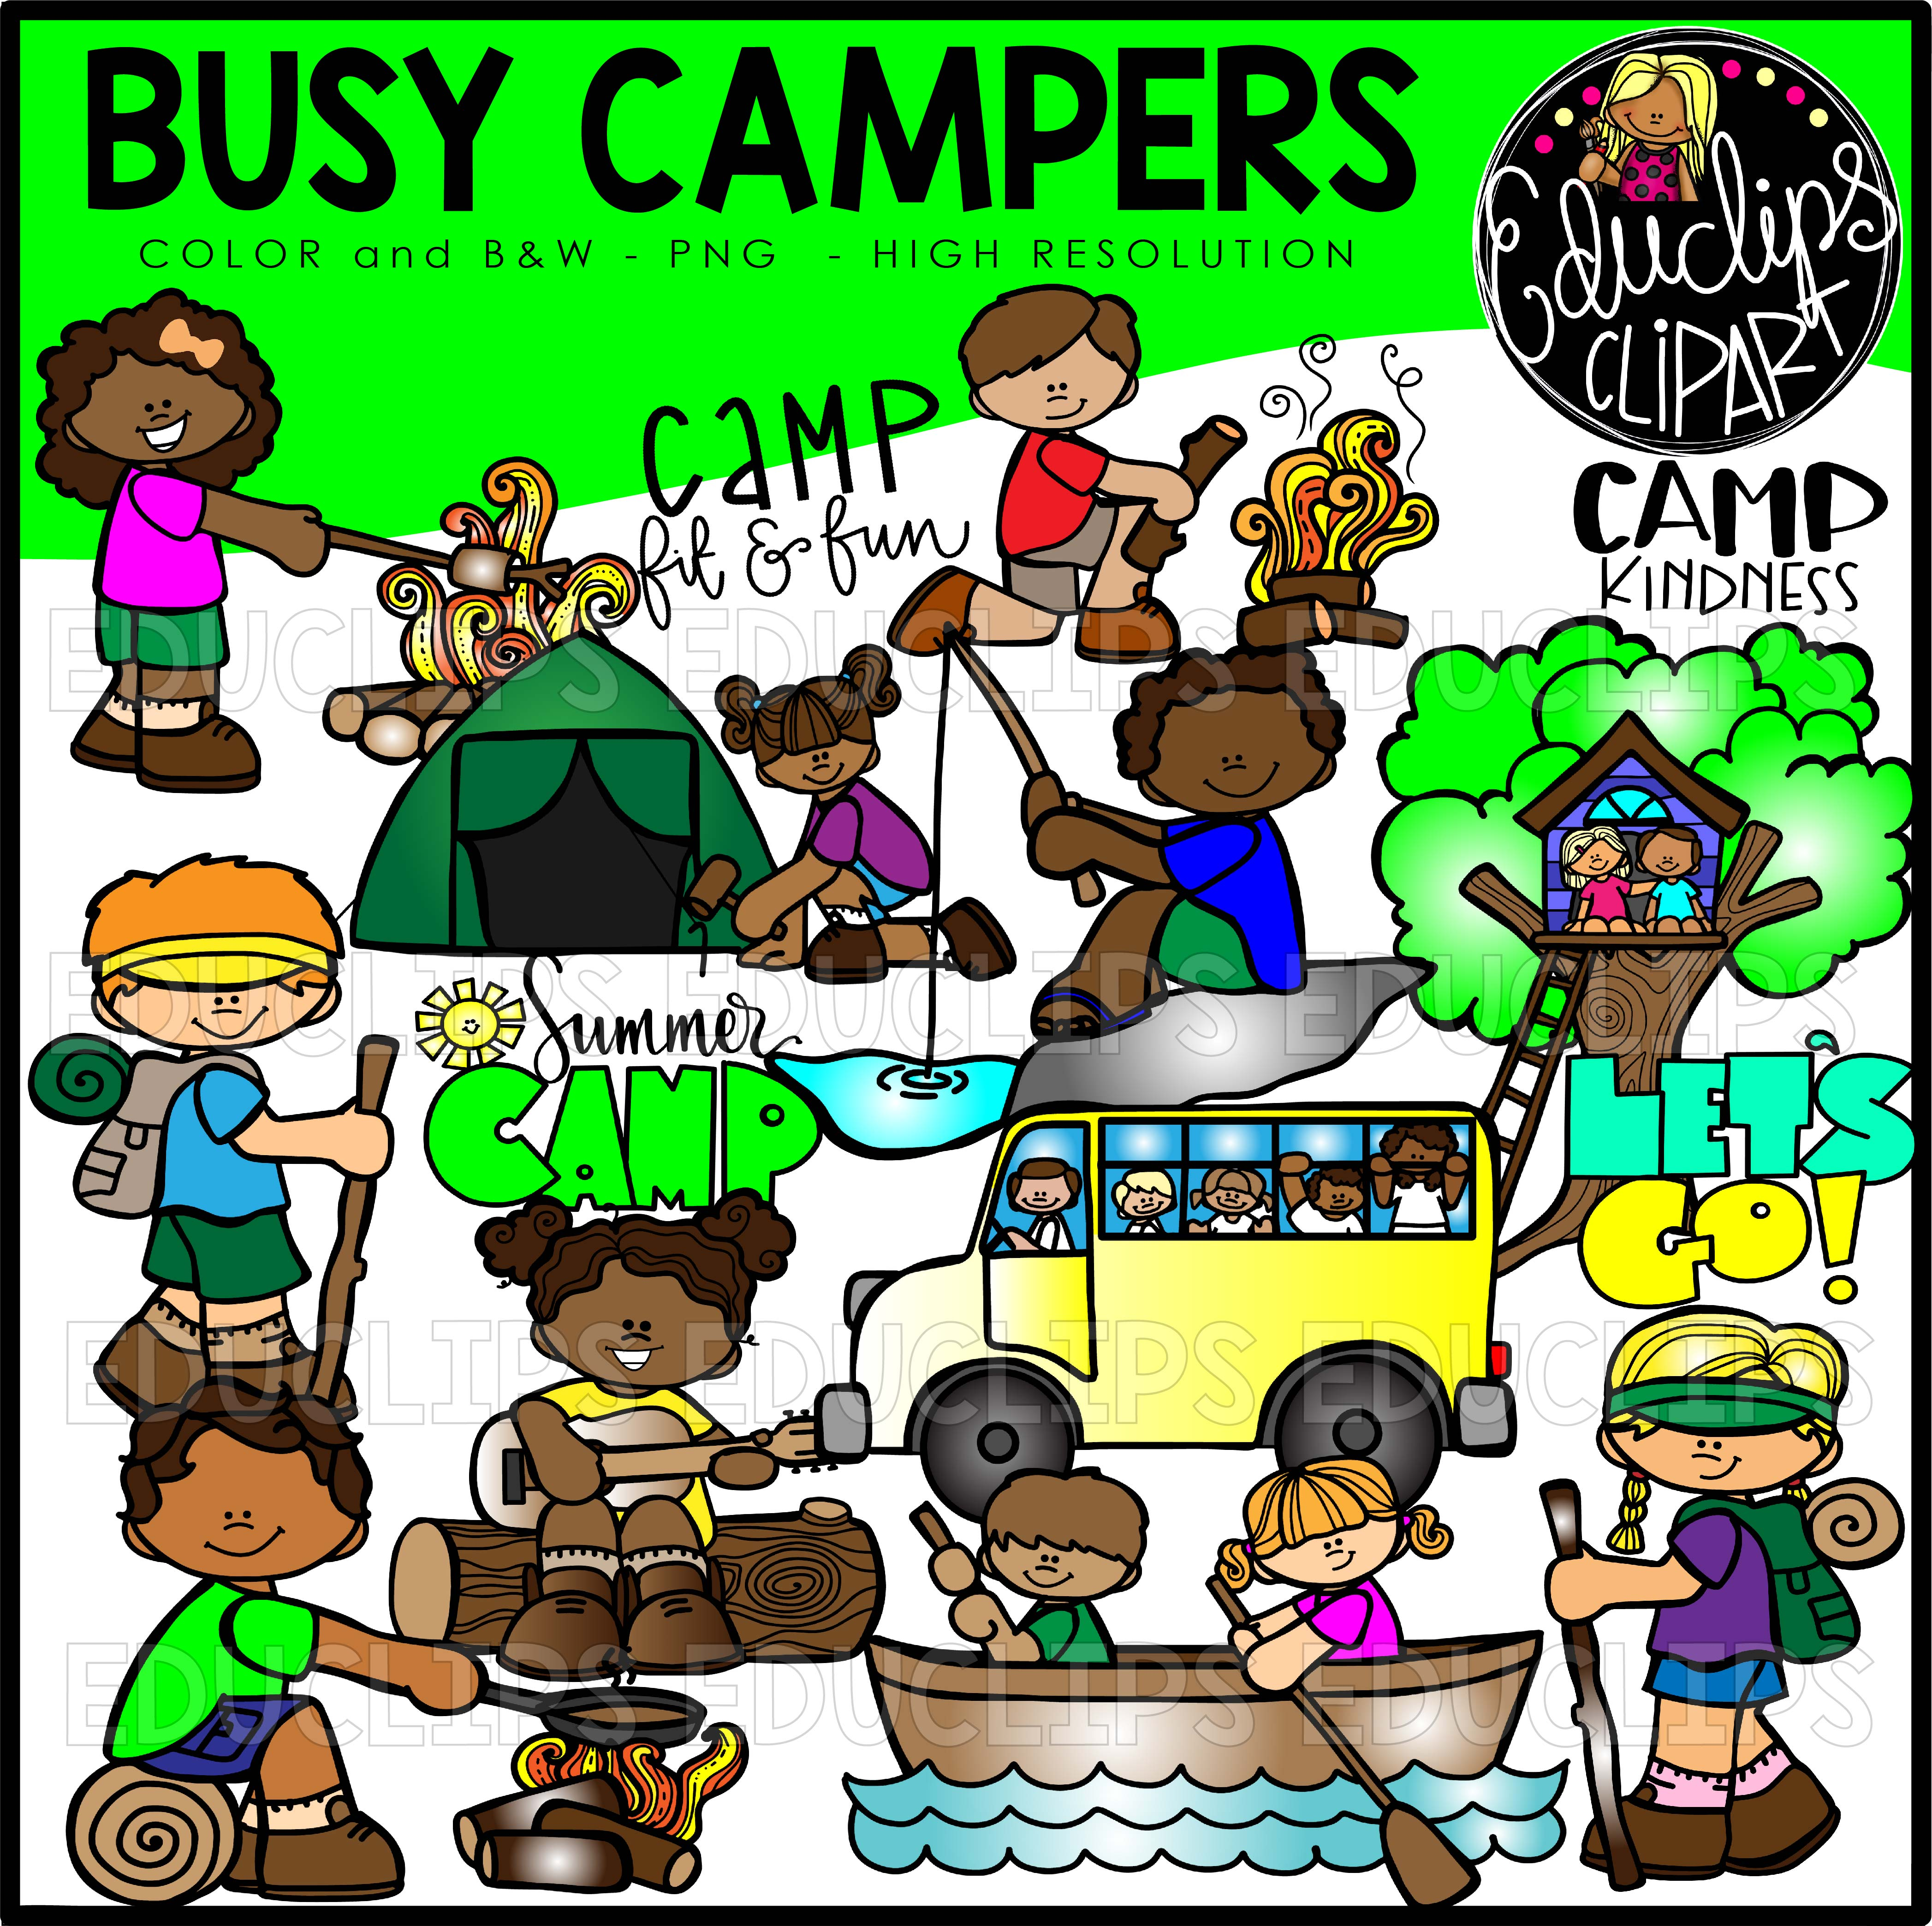 Canoe camp song clipart banner freeuse stock Busy Campers Clip Art Bundle (Color and B&W) banner freeuse stock